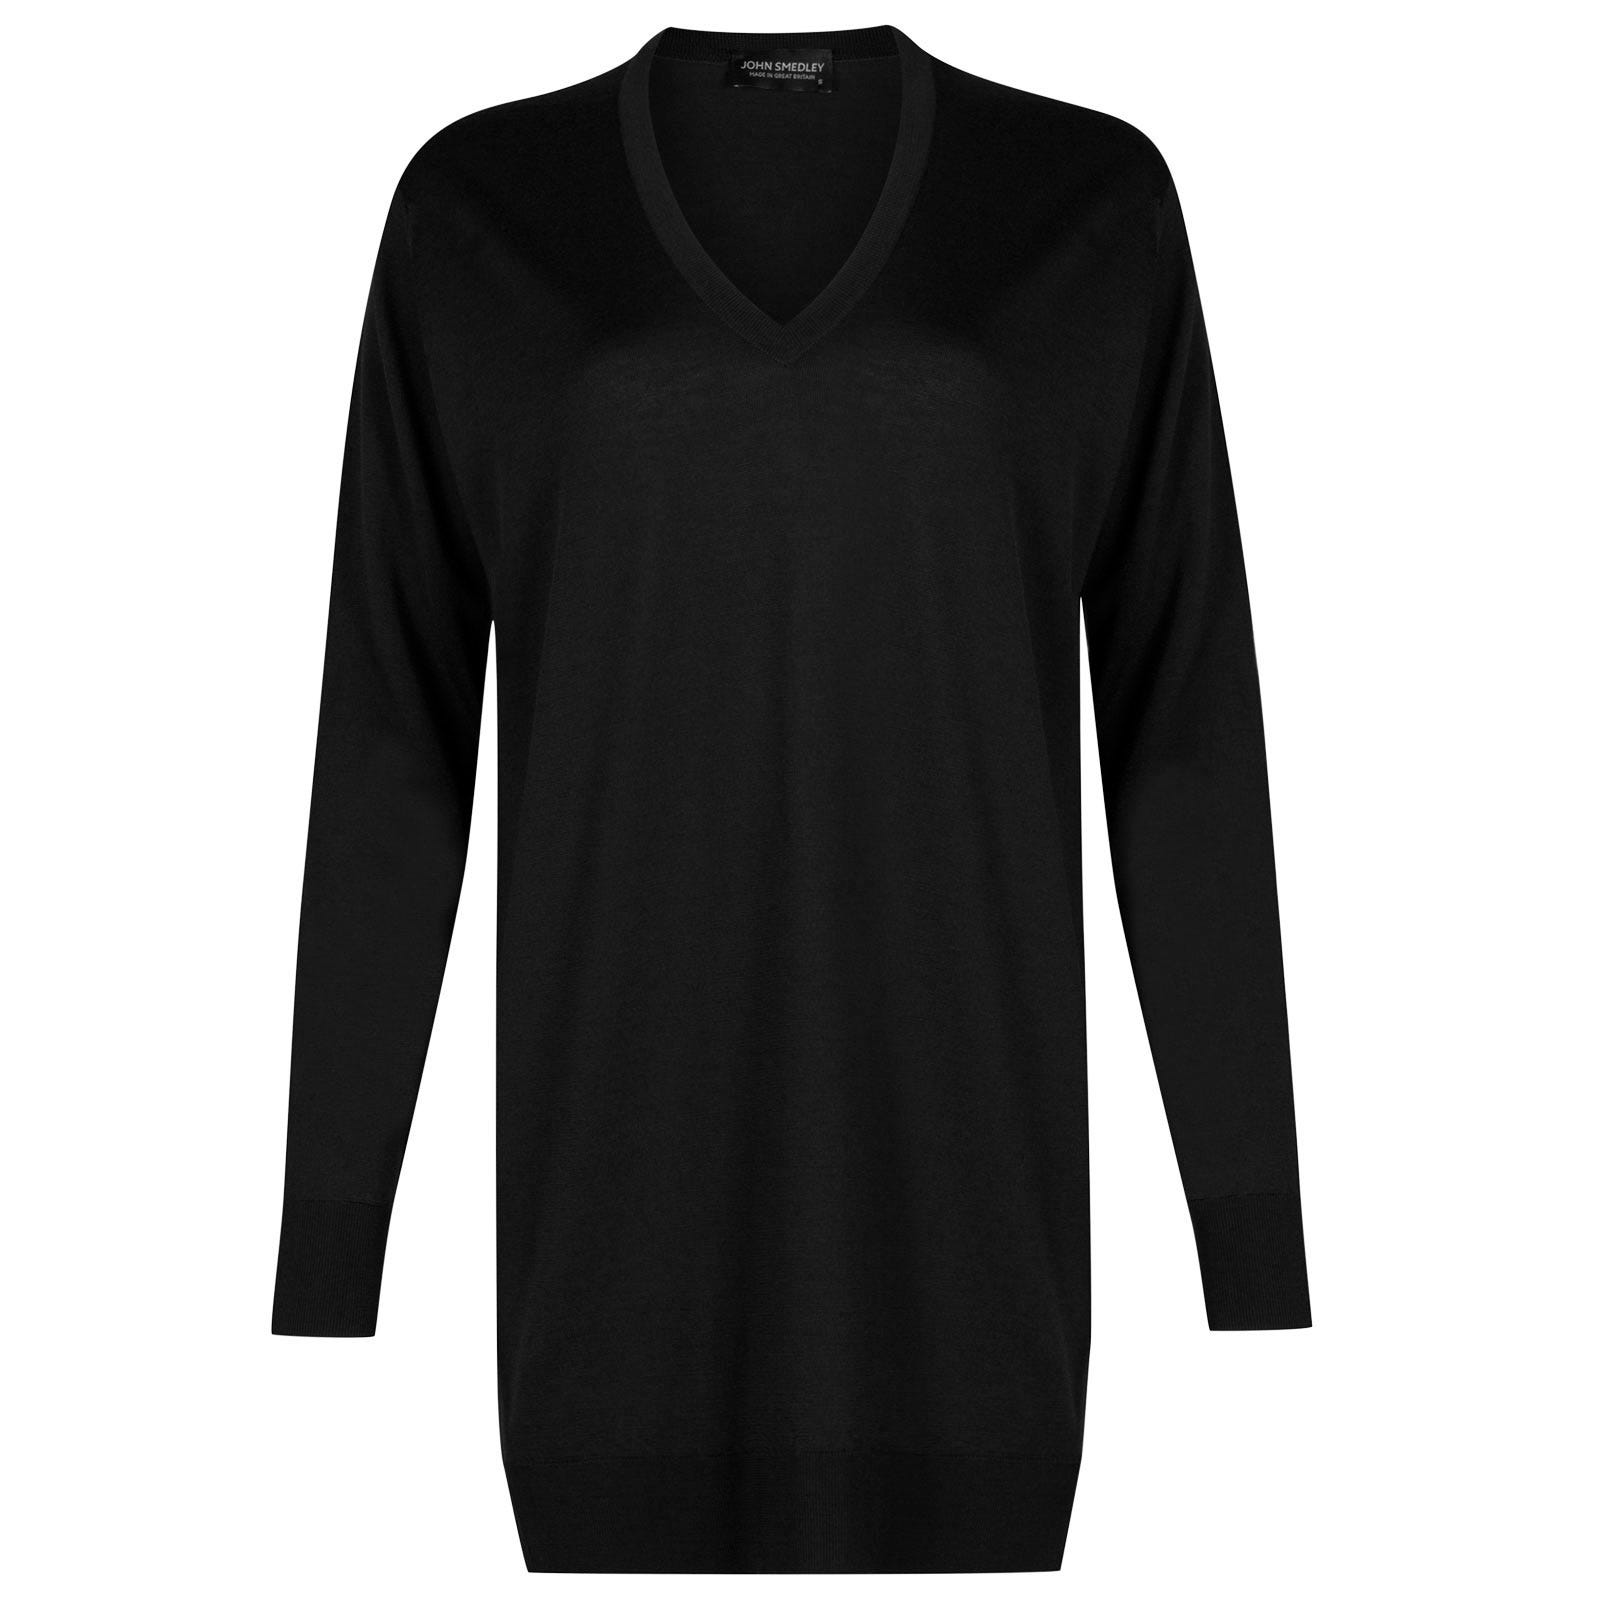 John Smedley Alma Merino Wool Sweater in Black-L